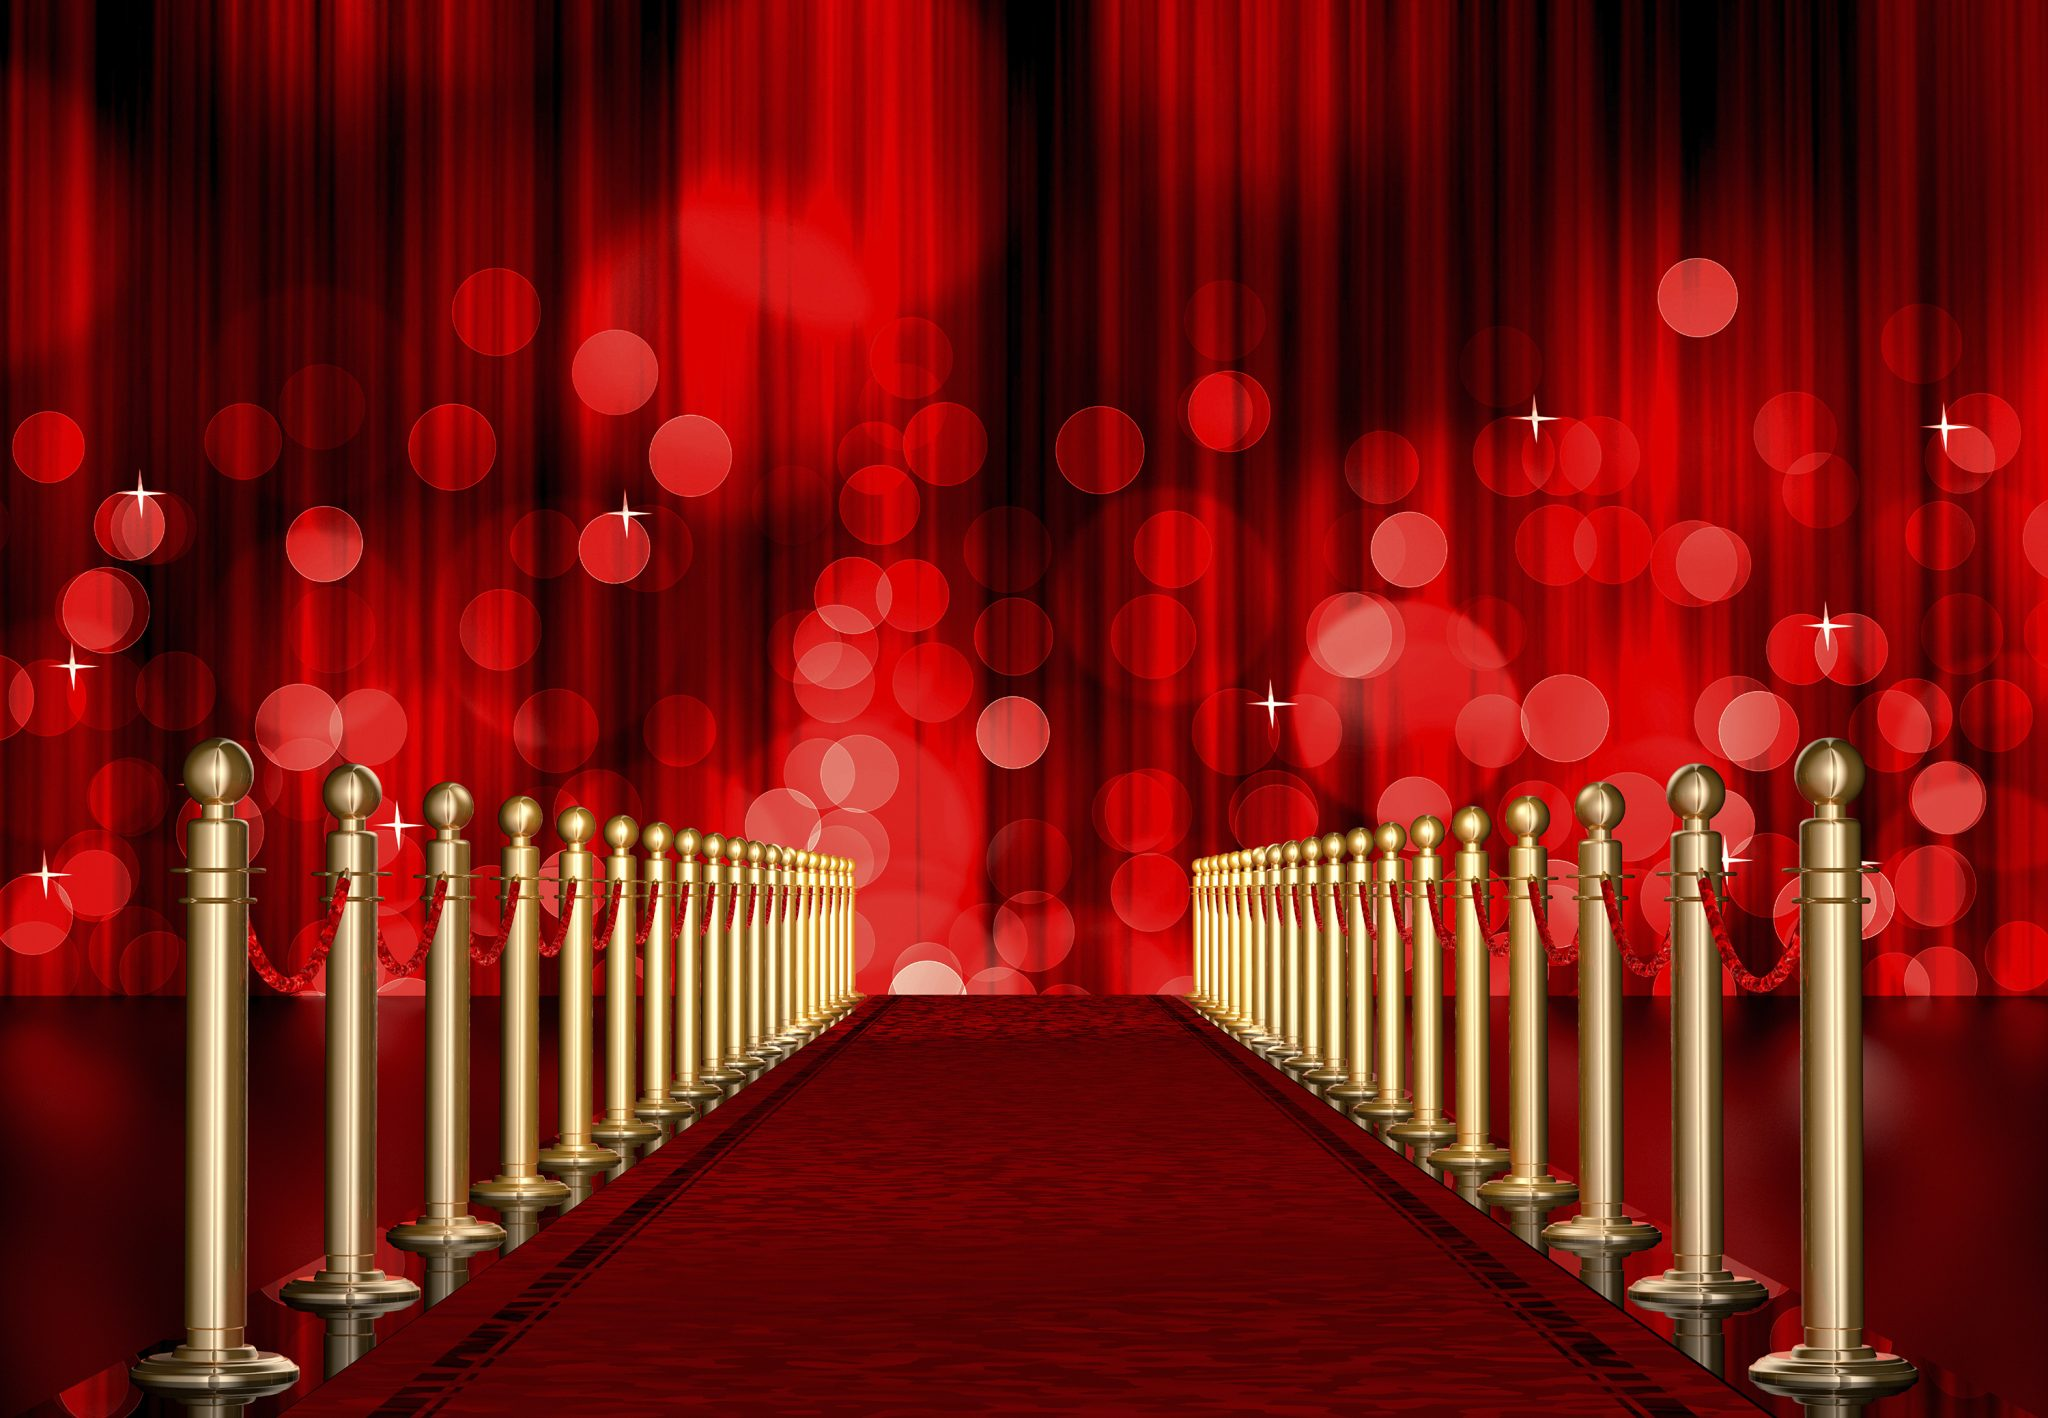 Photo of red carpet